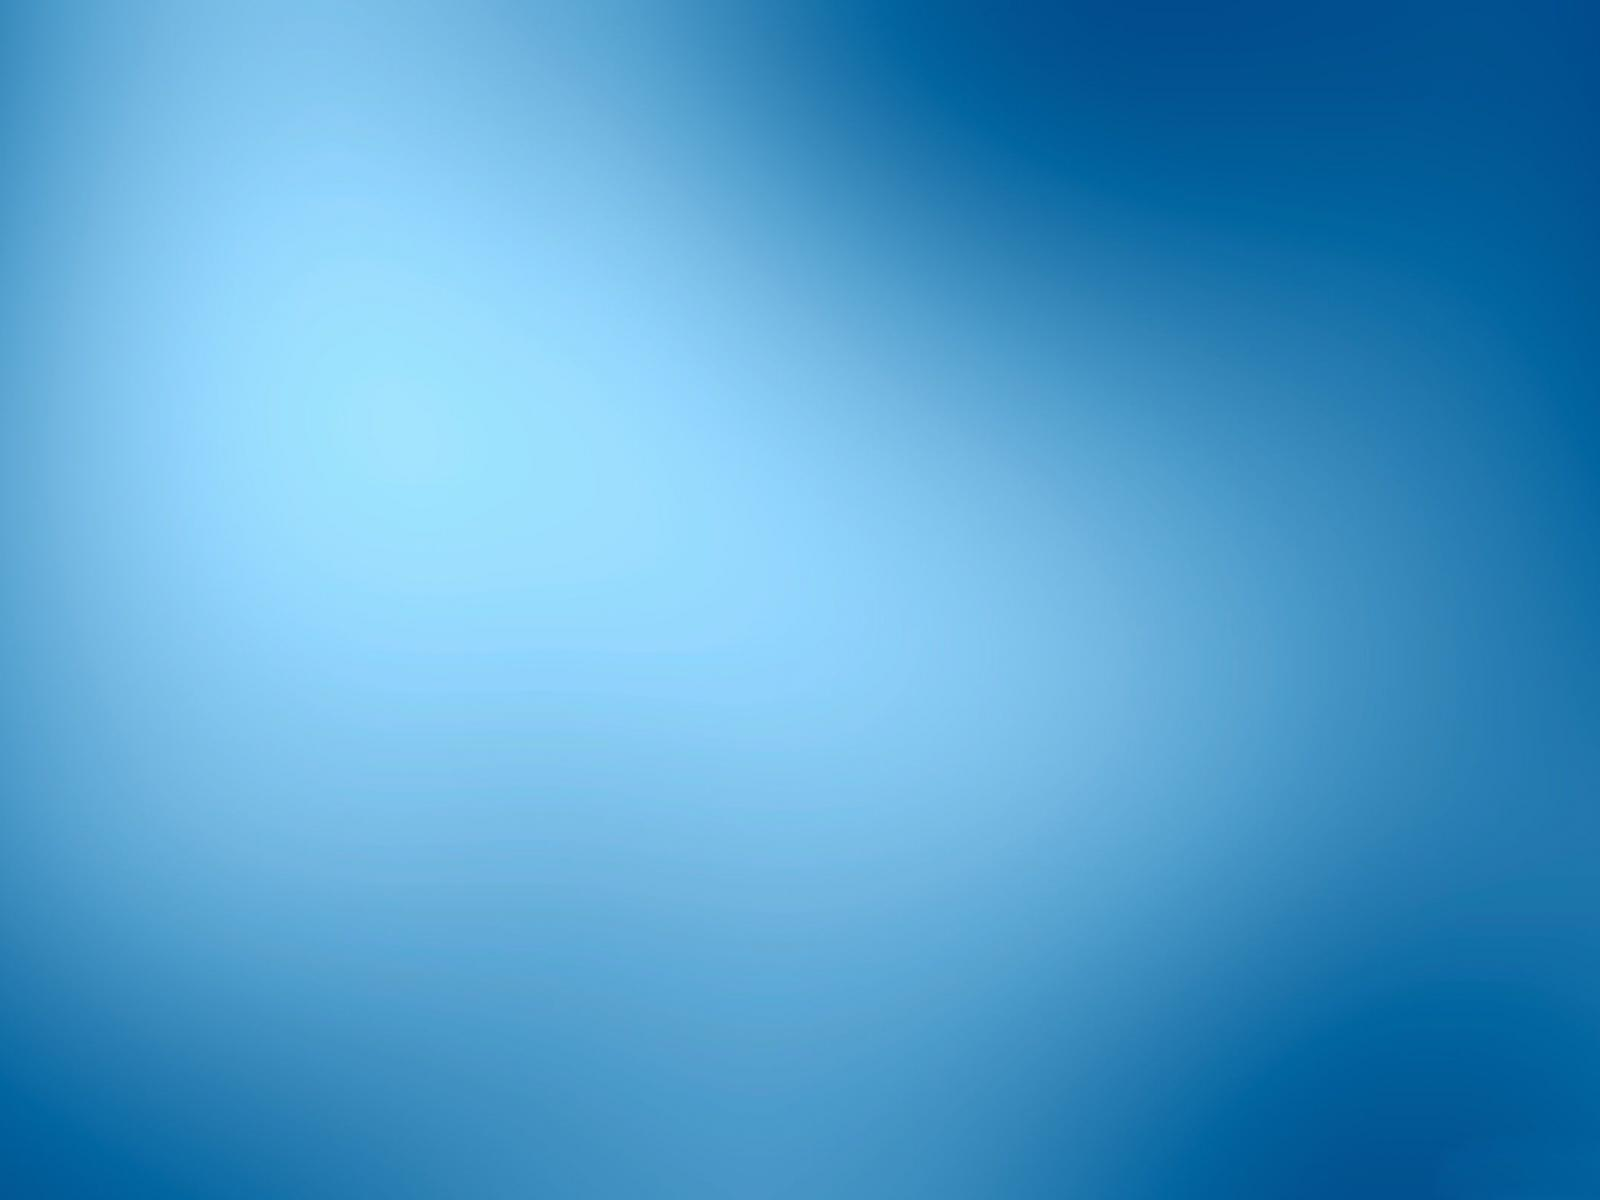 simple abstract backgrounds wallpaper | 1600x1200 | #10986